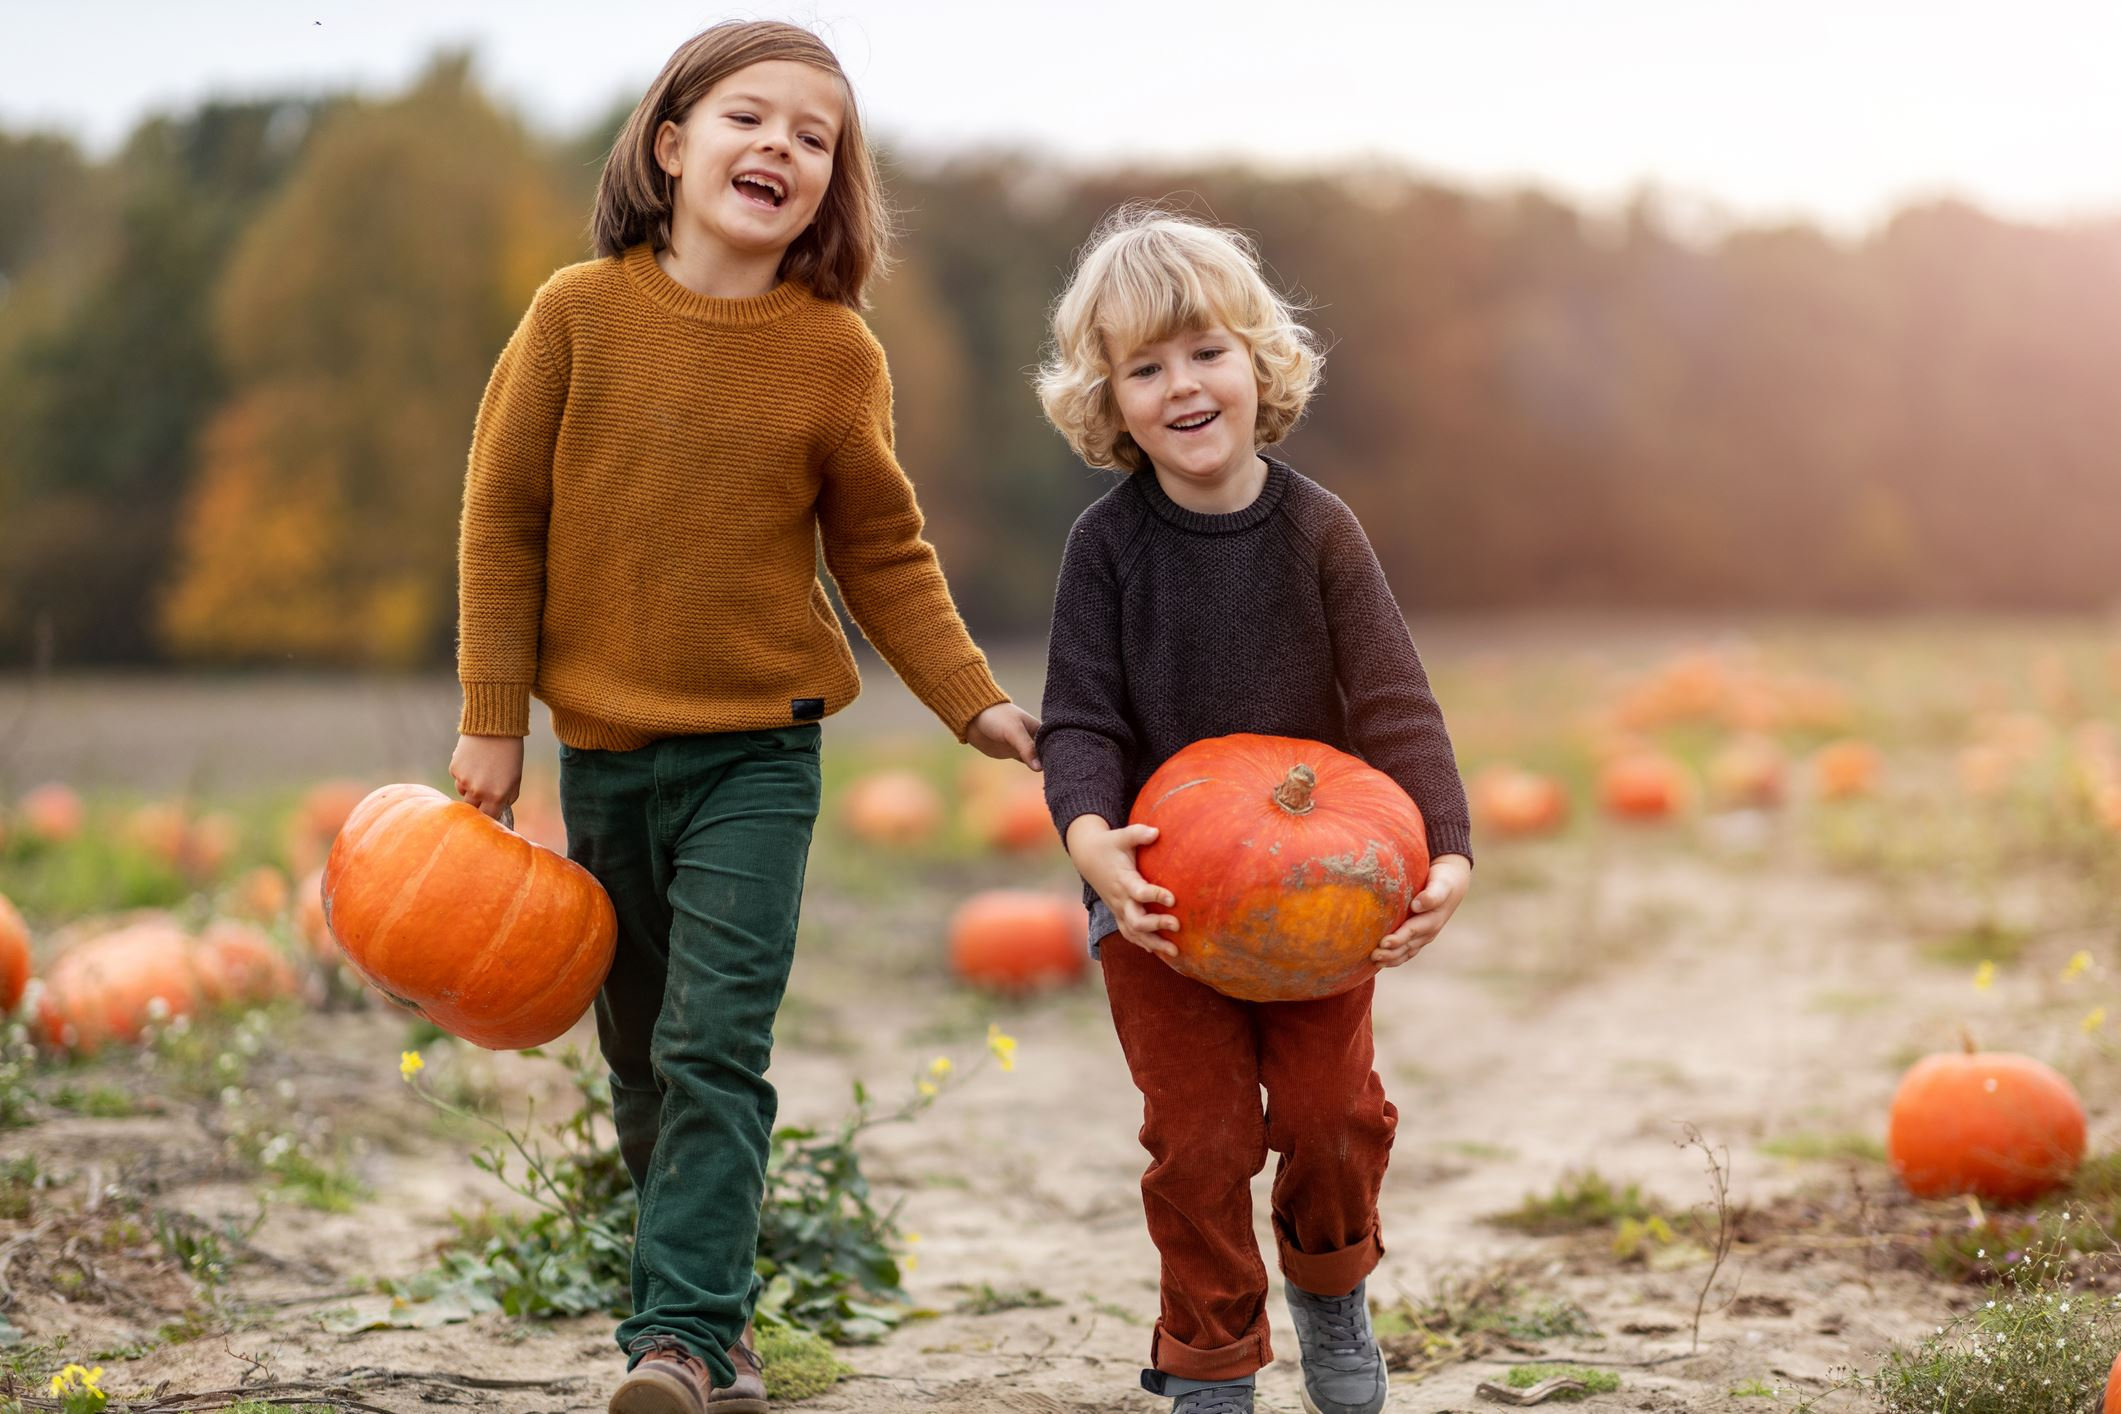 Photo of children holding pumpkins outside.